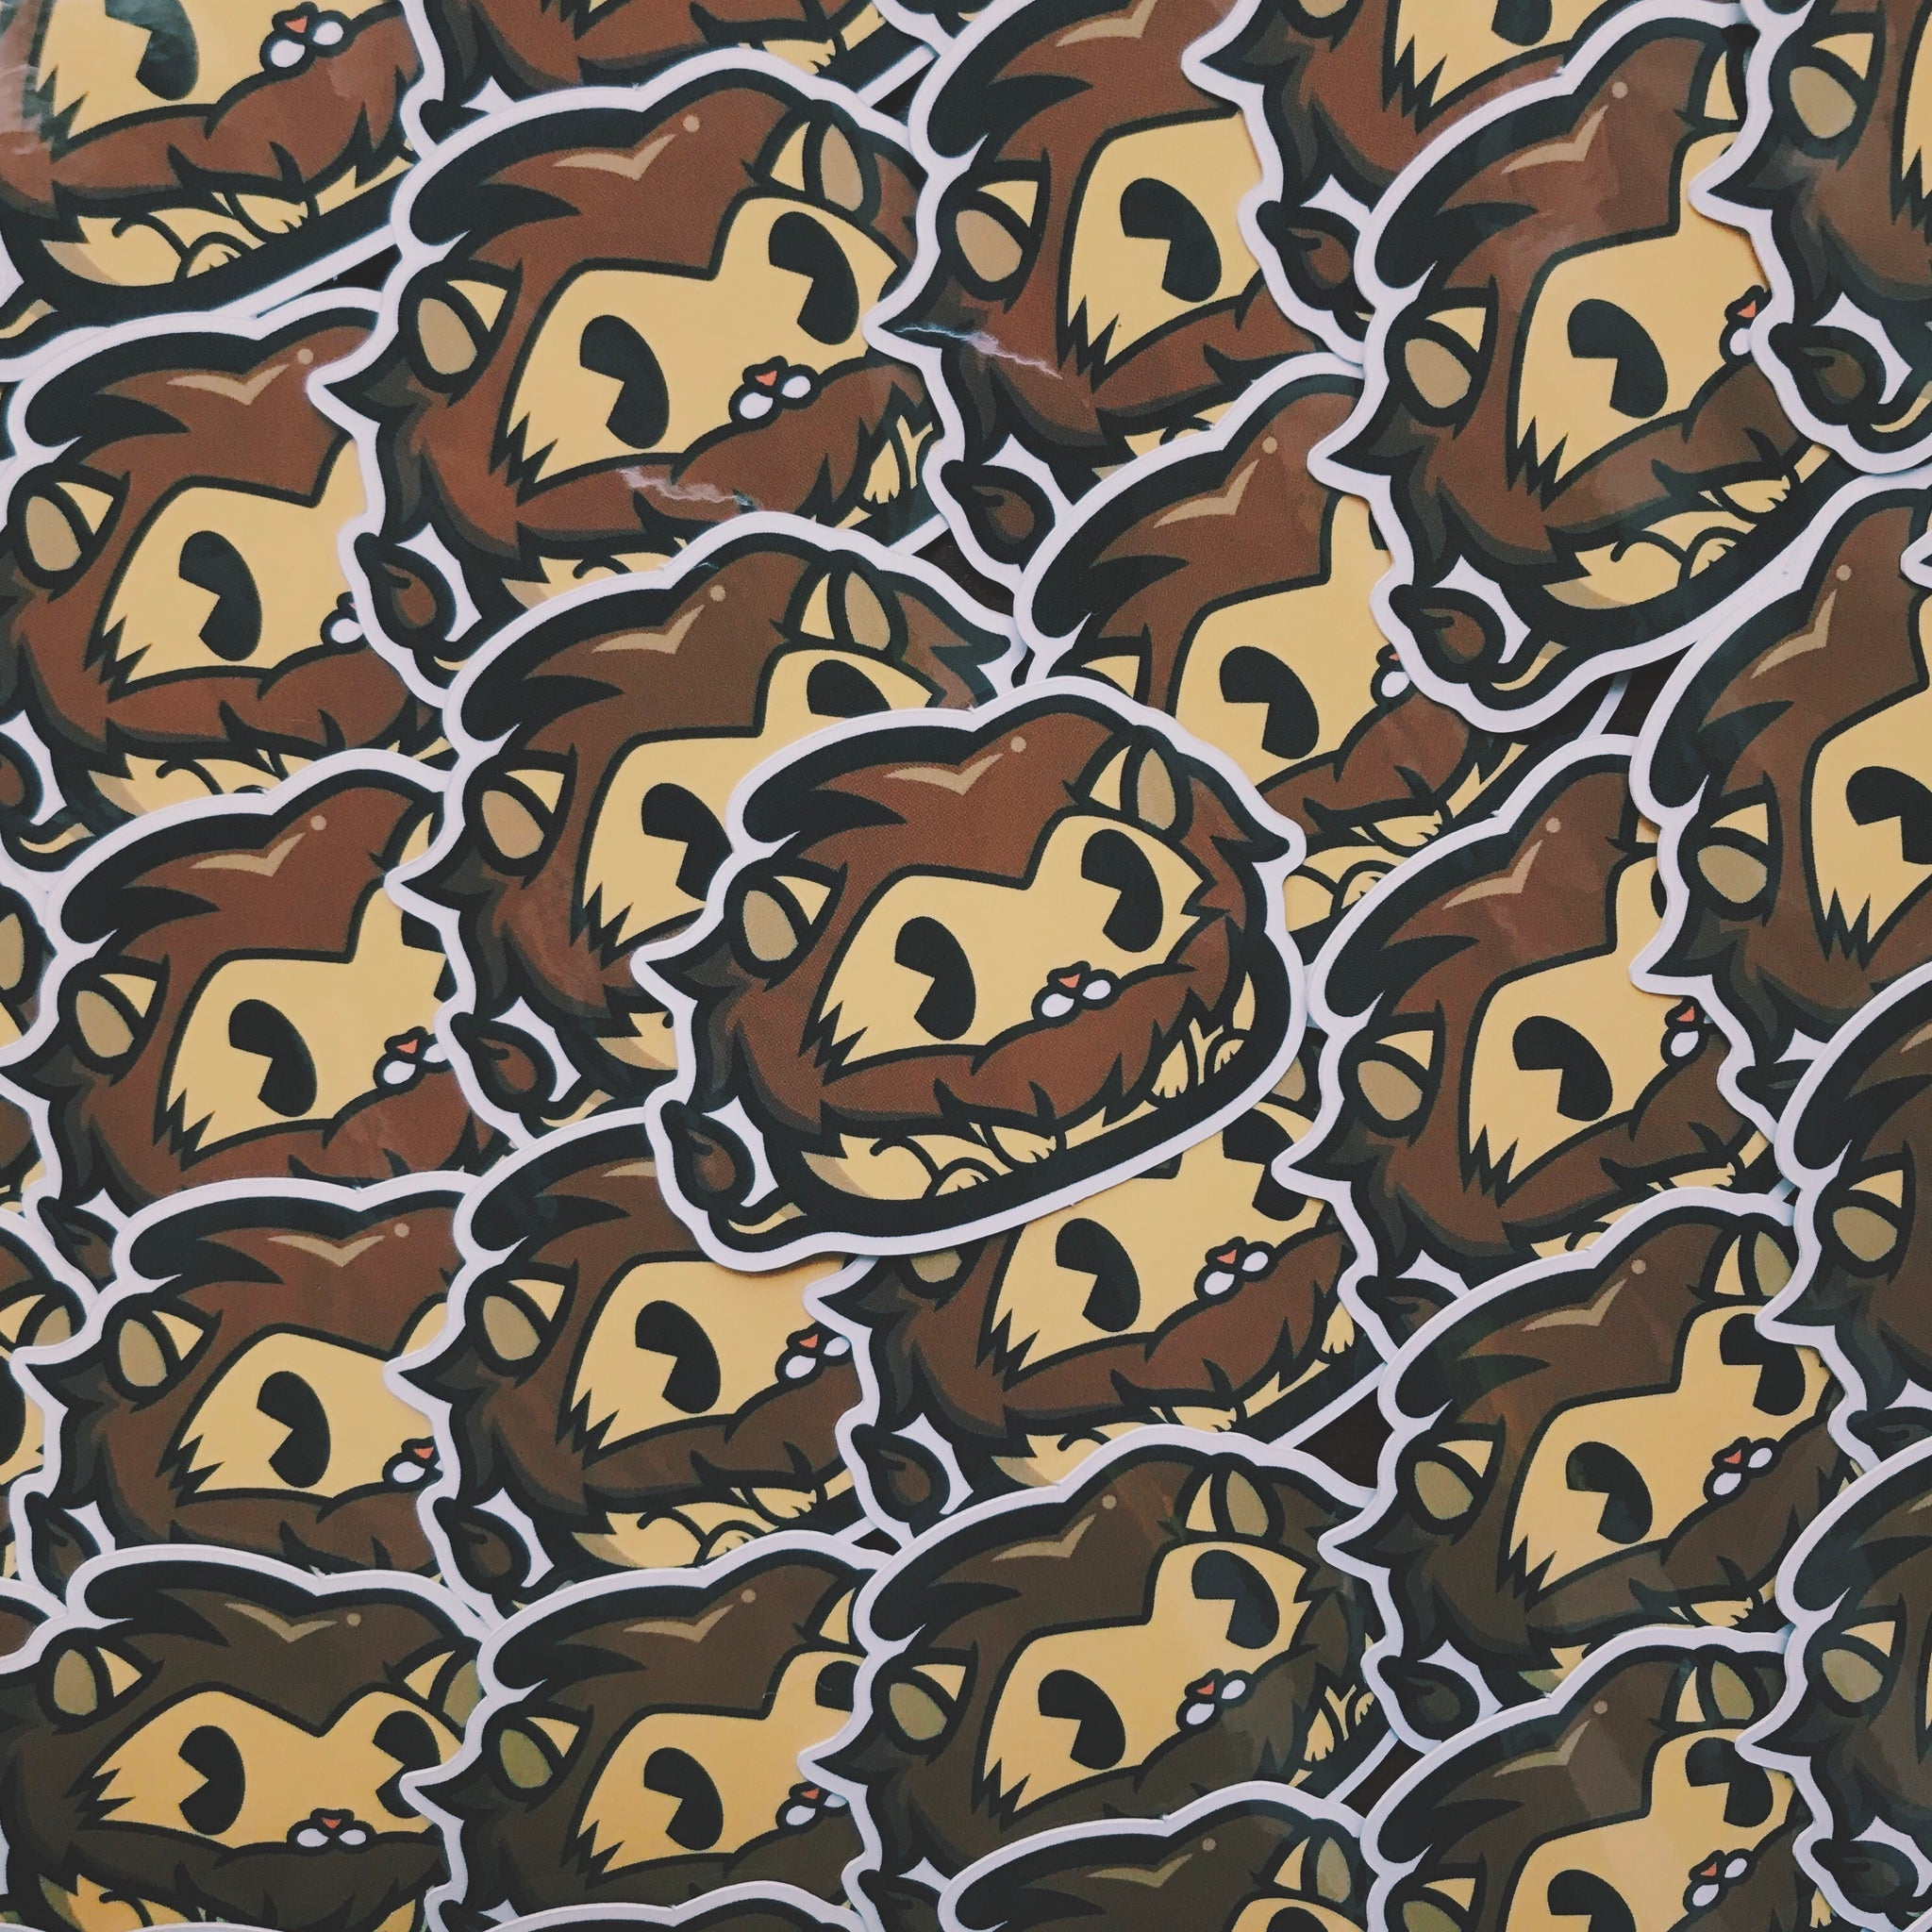 Lion Poo Sticker